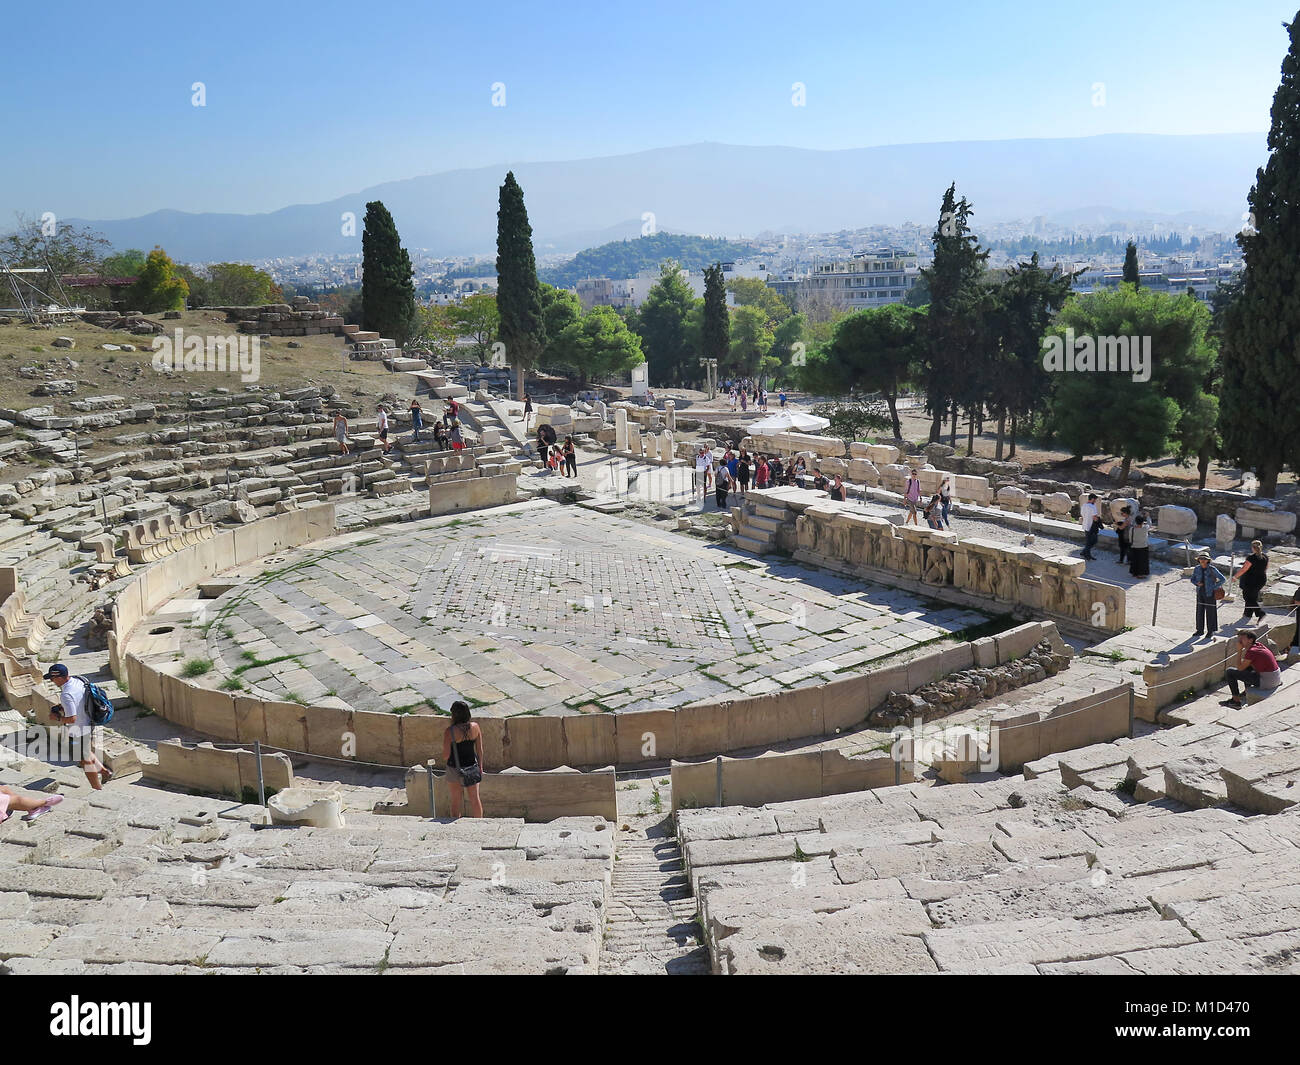 Dionysostheater, Akropolis, Athen, Griechenland - Stock Image